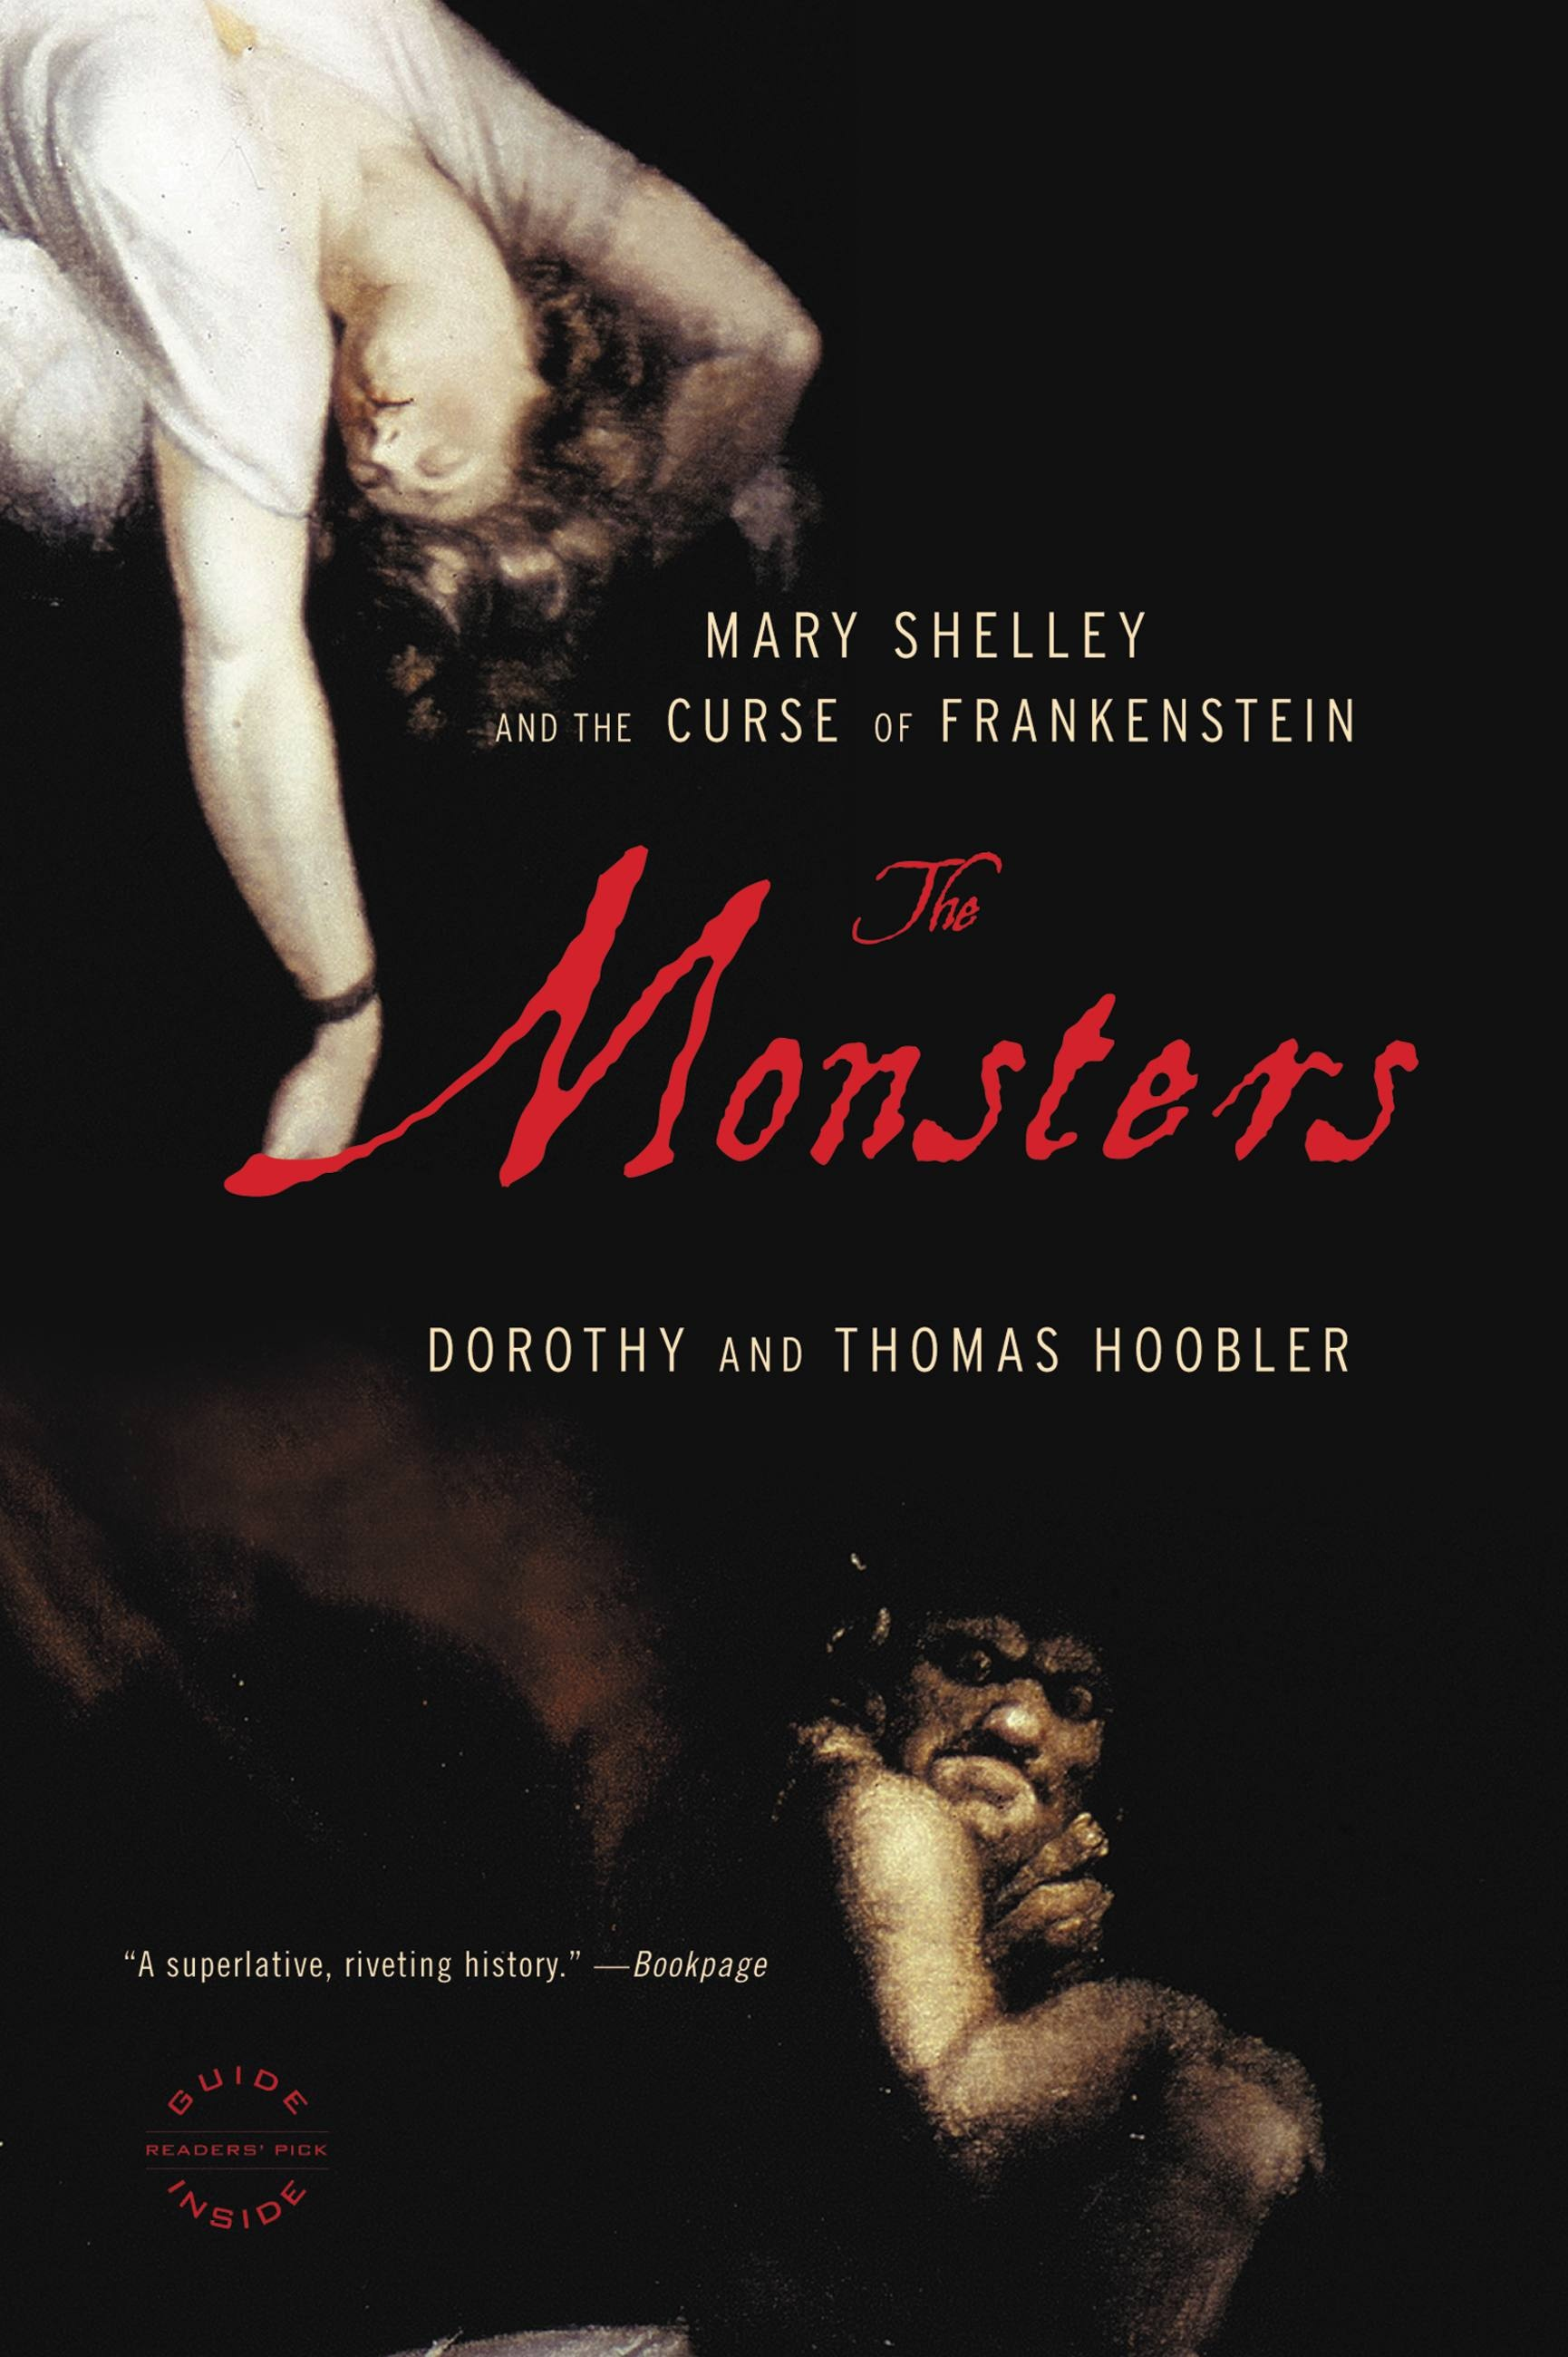 comparing myself to the monster from frankenstein